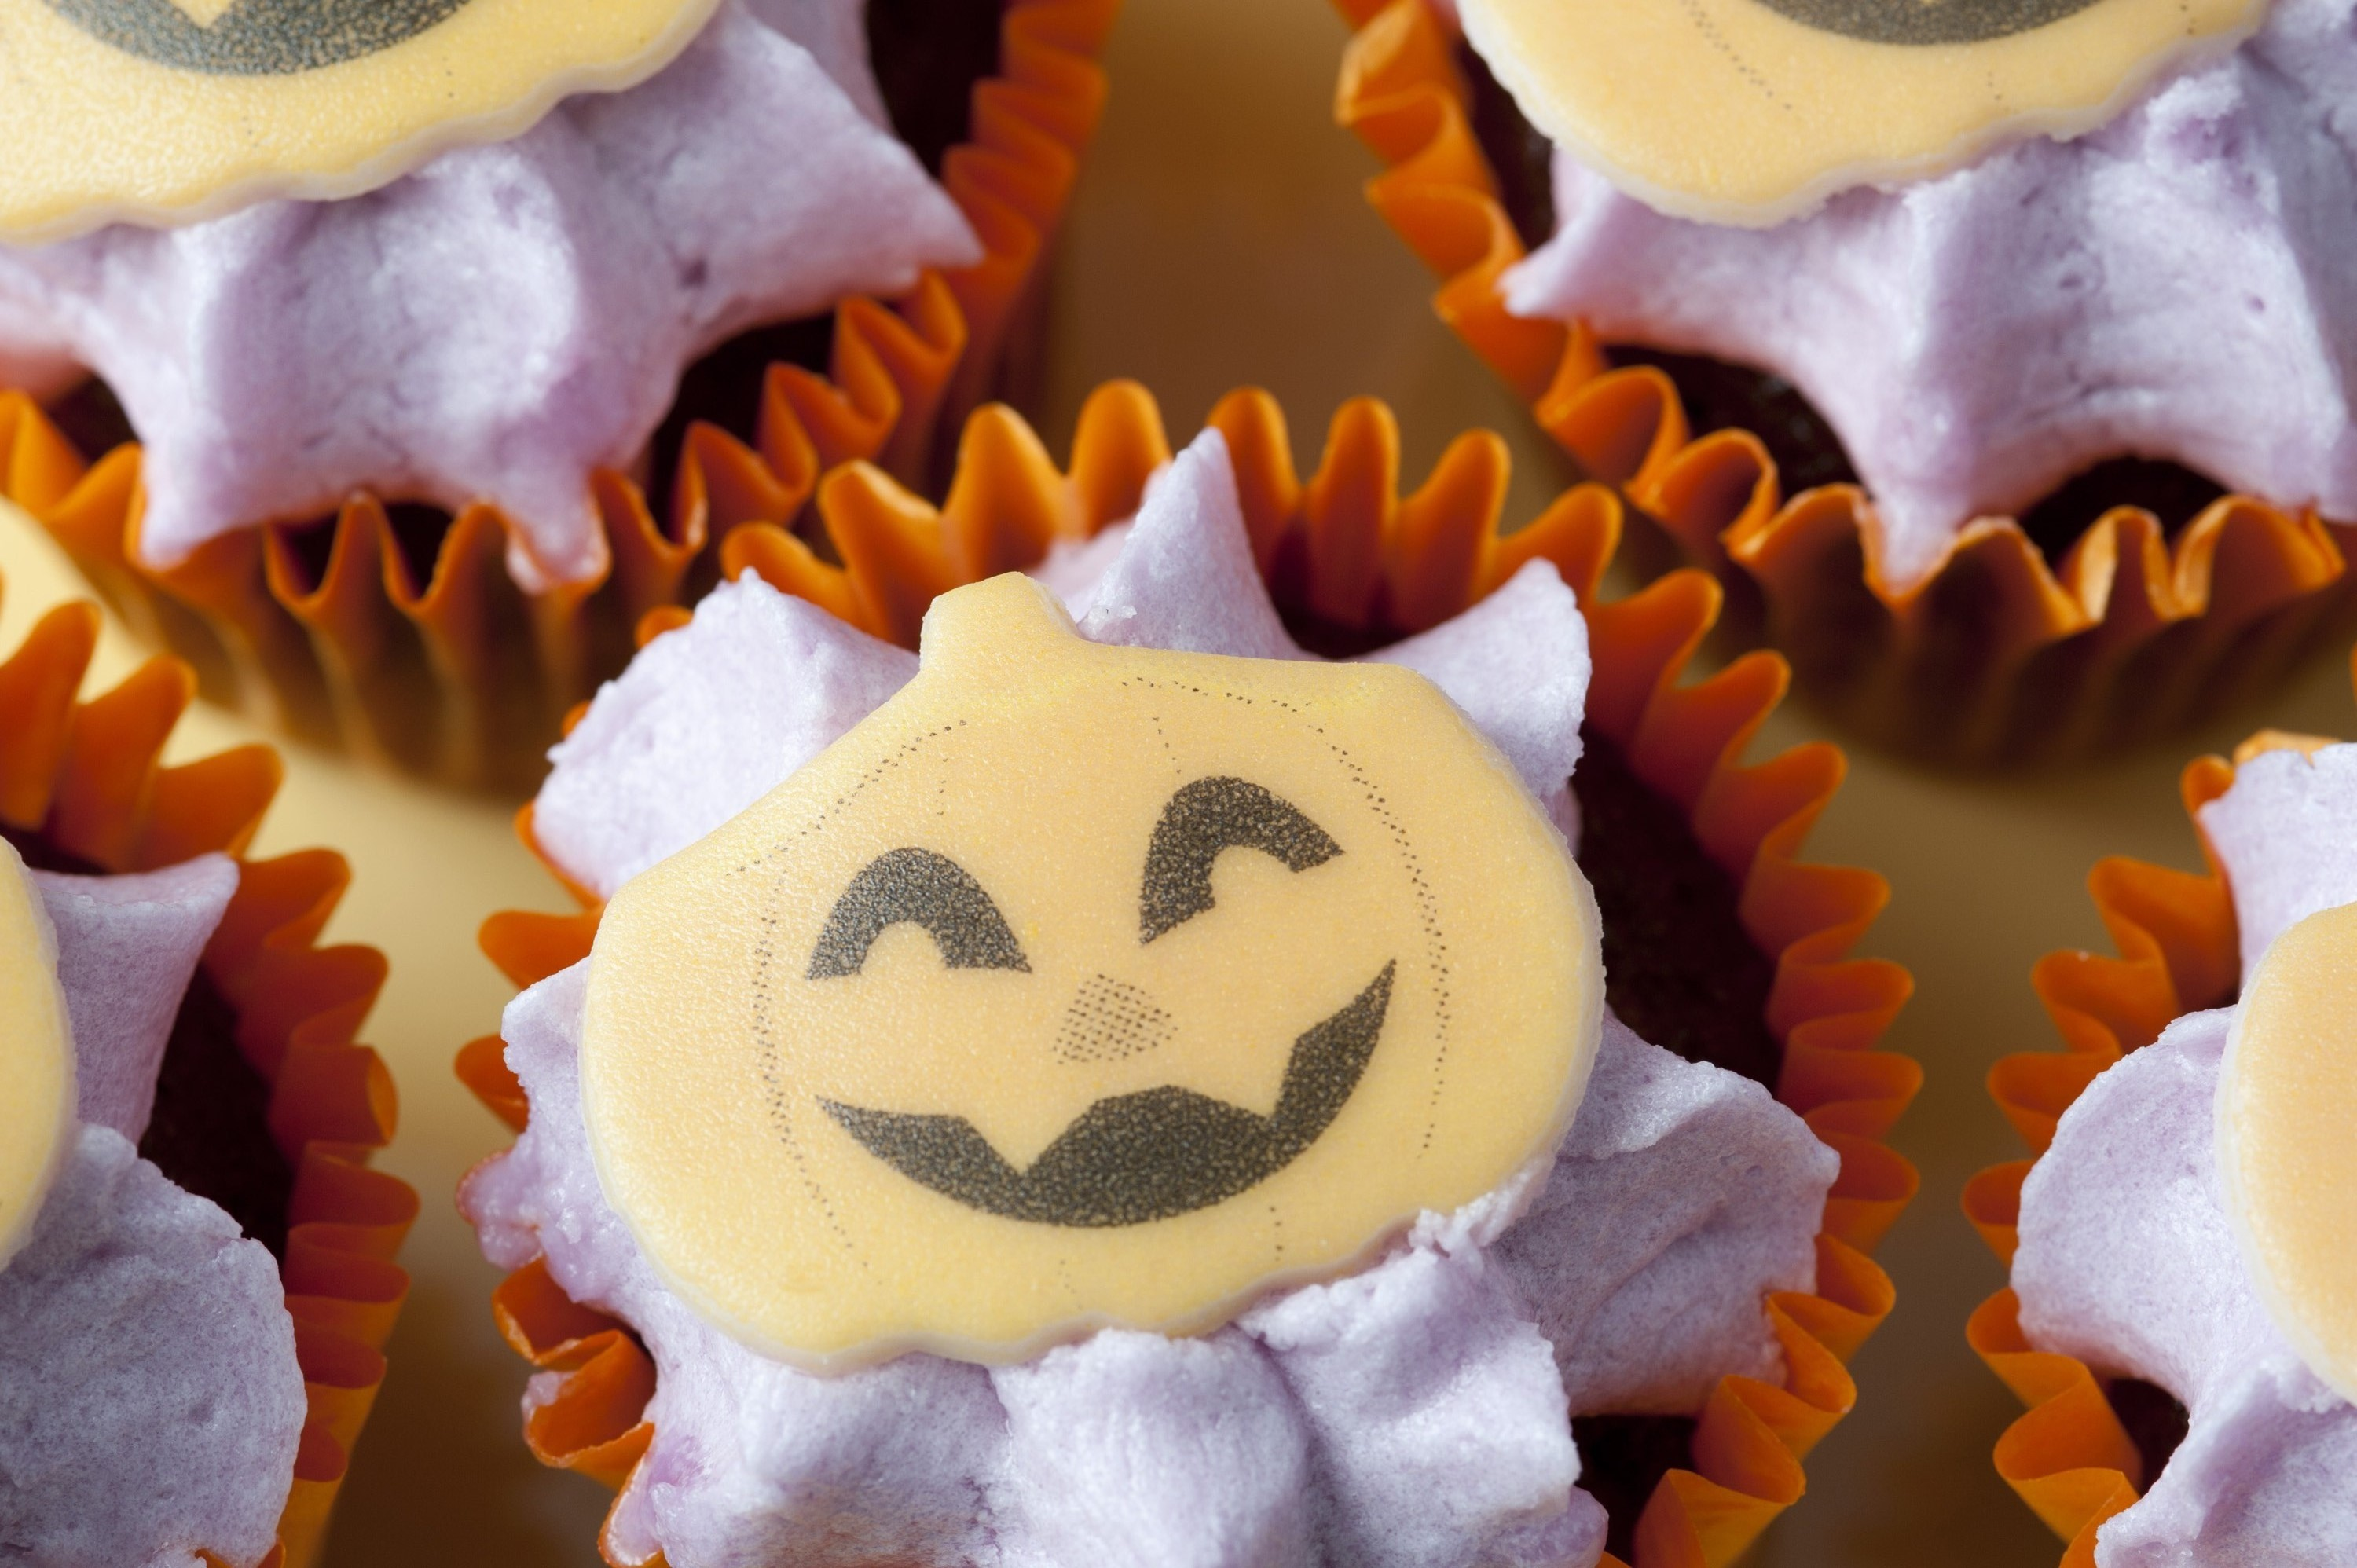 miniature halloween decorated party cup cakes with jack-o-lantern faces